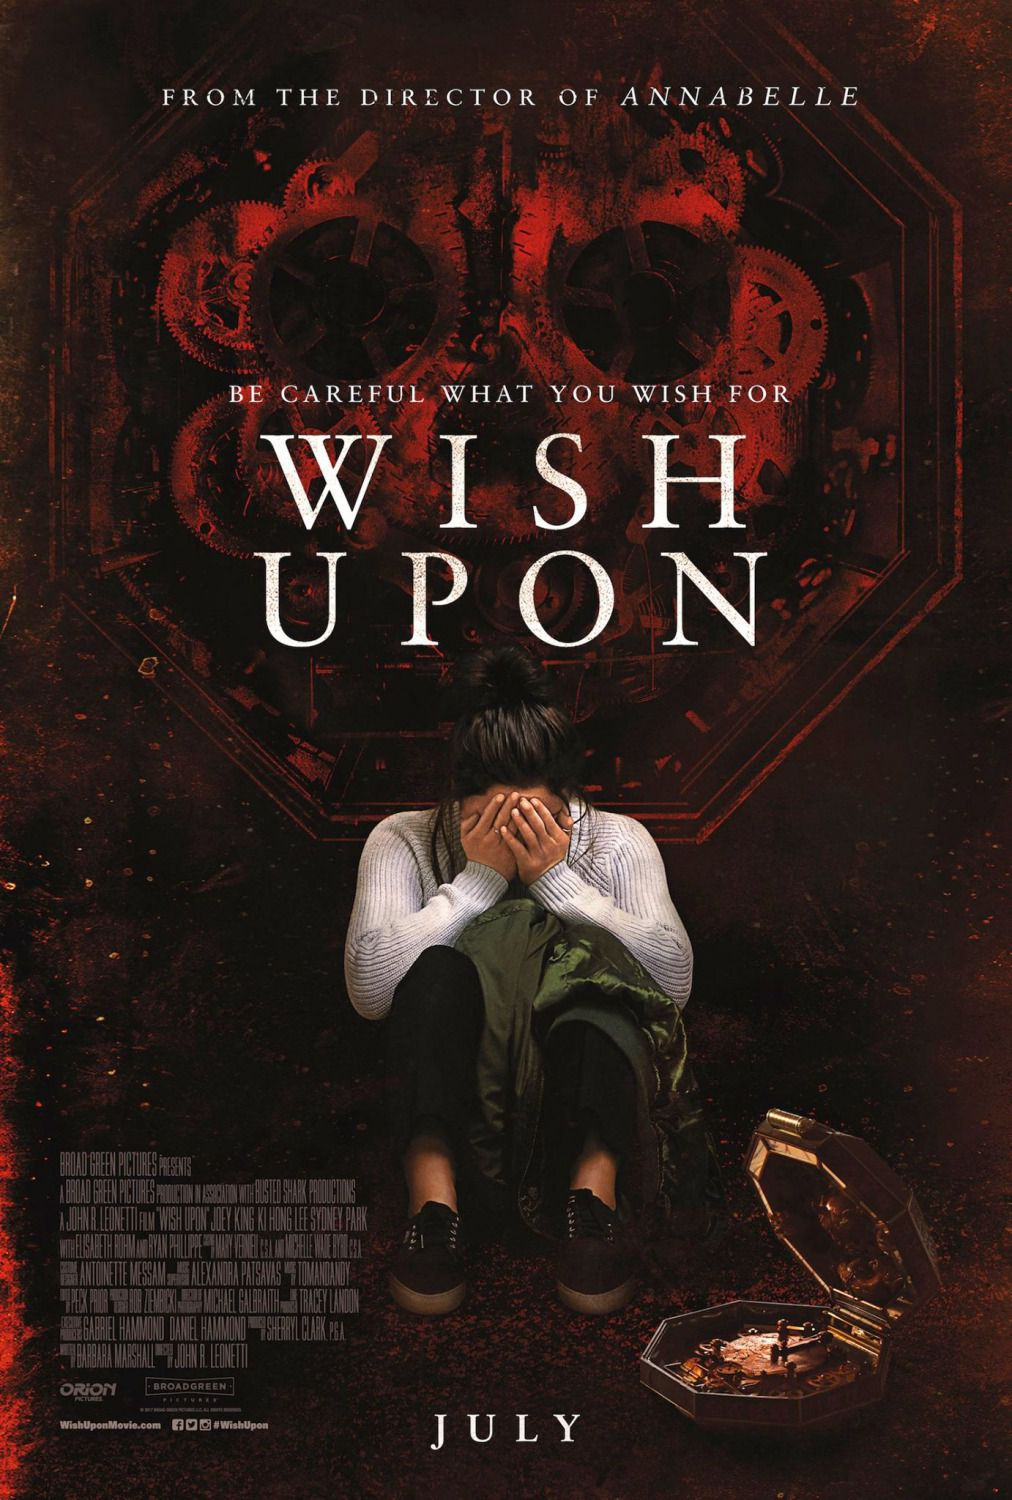 film poster - Wish Upon ... be careful what you wish for